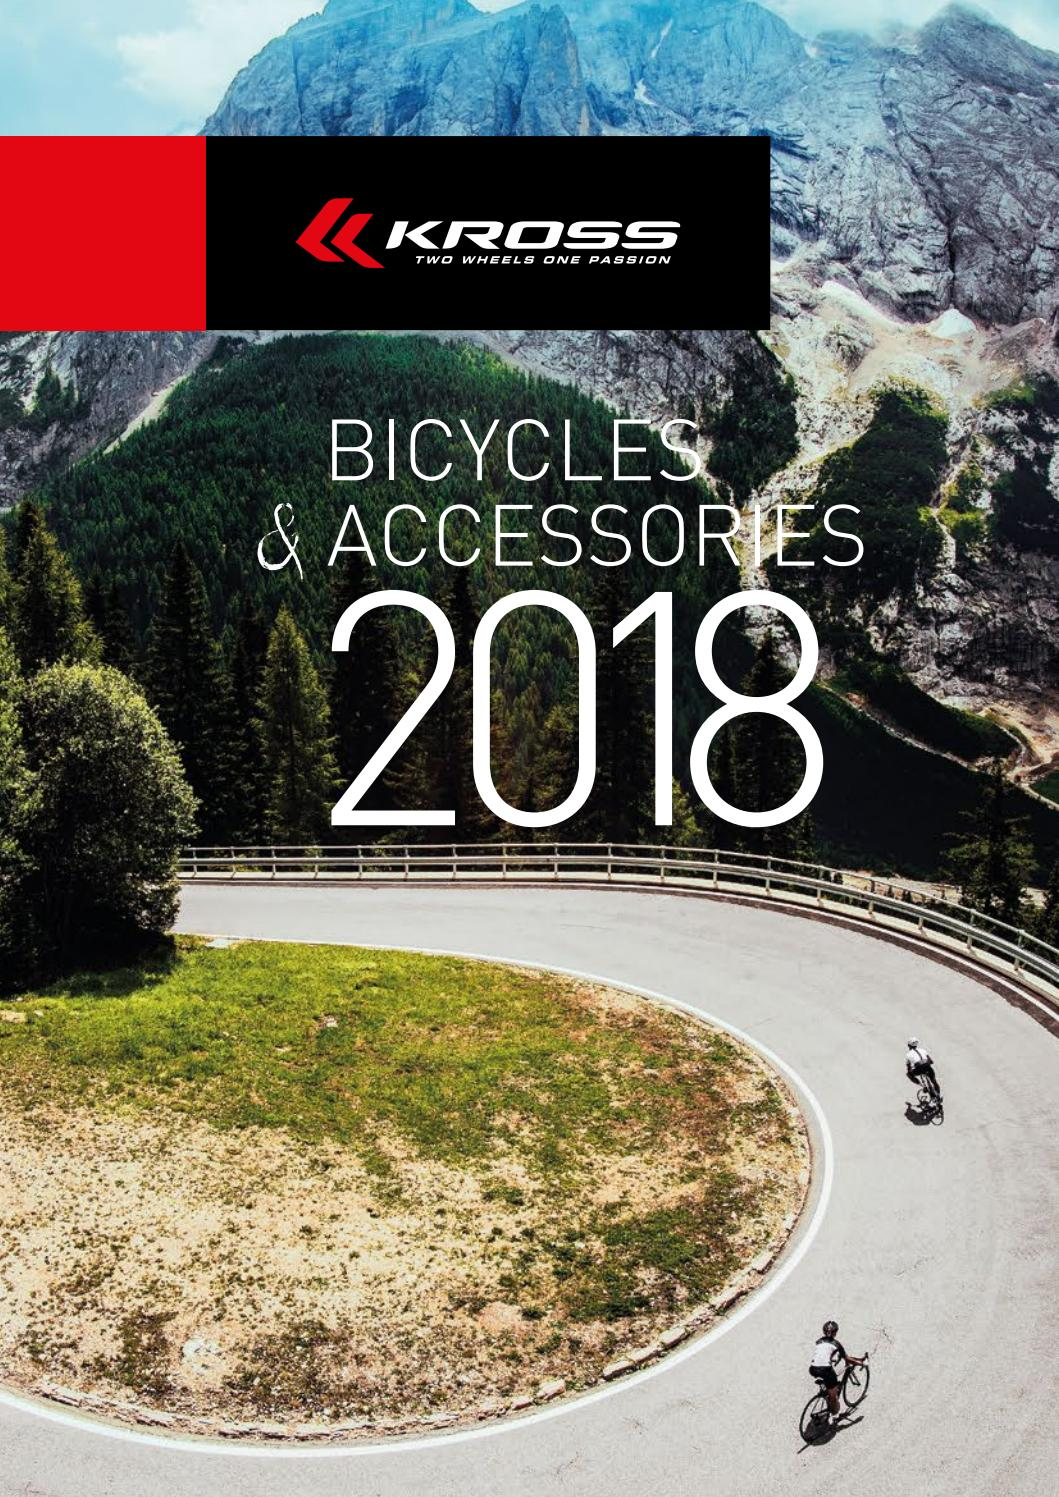 c9f4227f8e6 Kross Bicycles   Accessories 2018 catalog by Kross - issuu